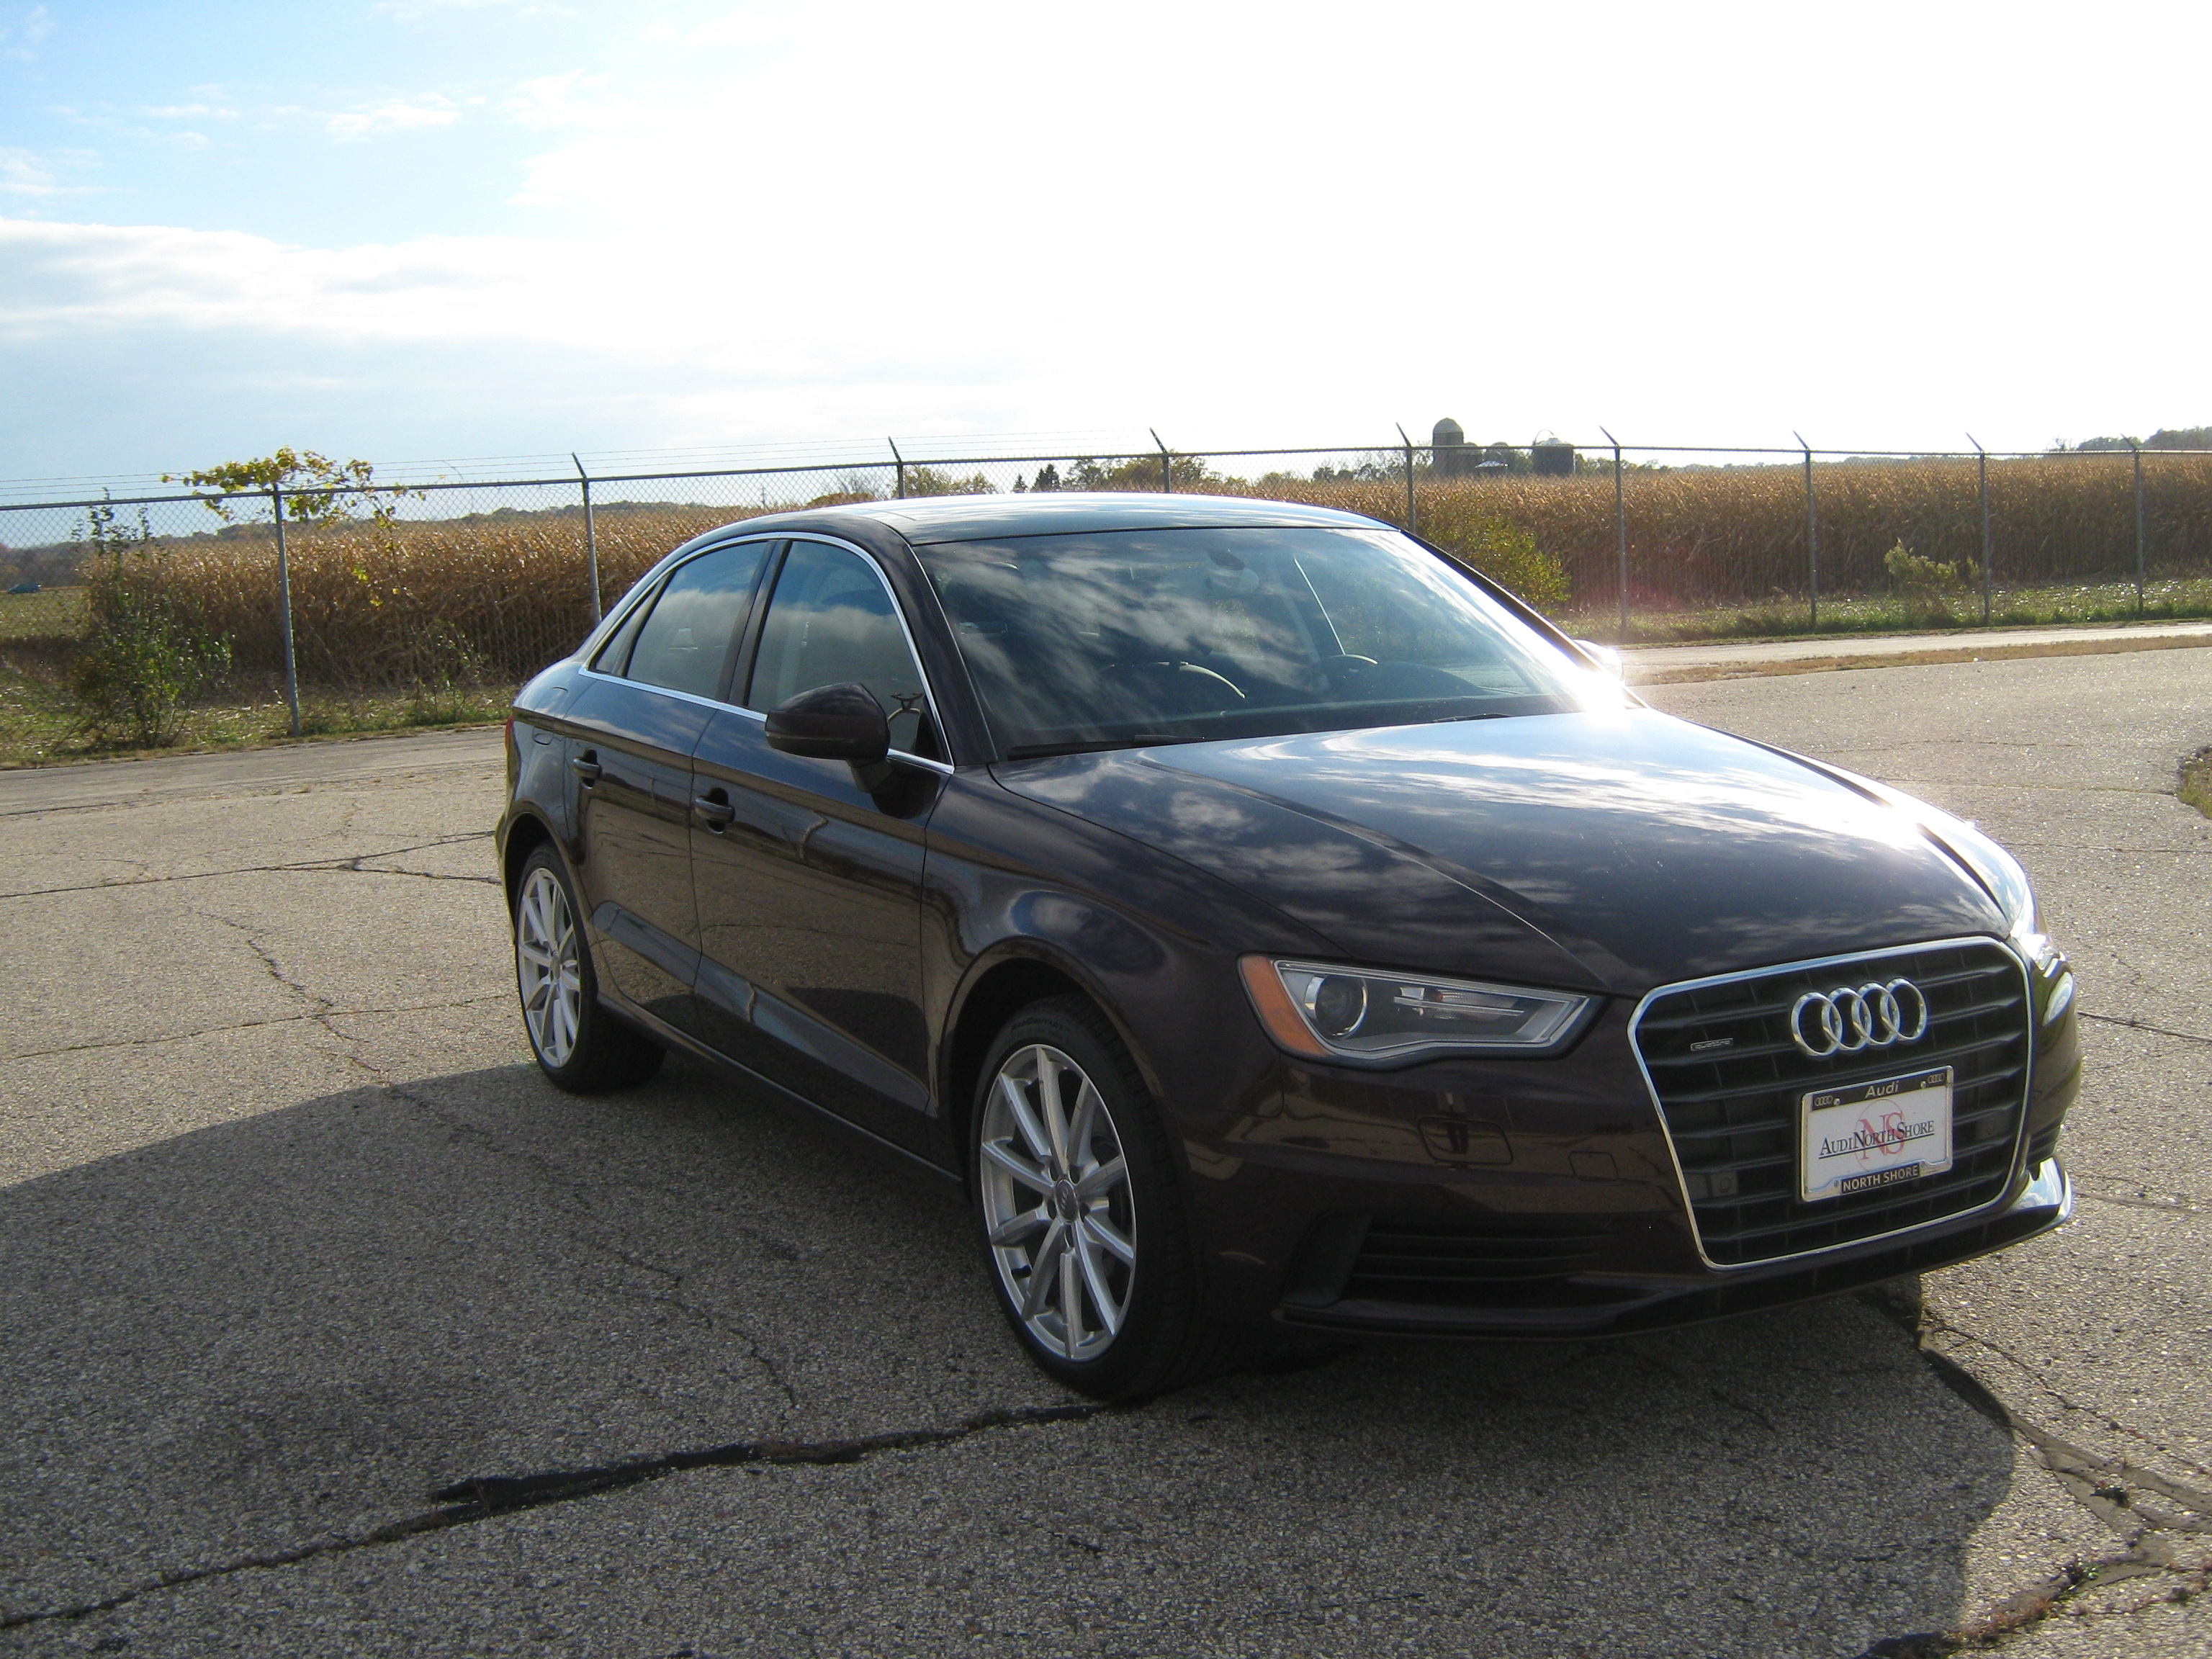 Photo of 2015 Audi A3 4 DR AWD